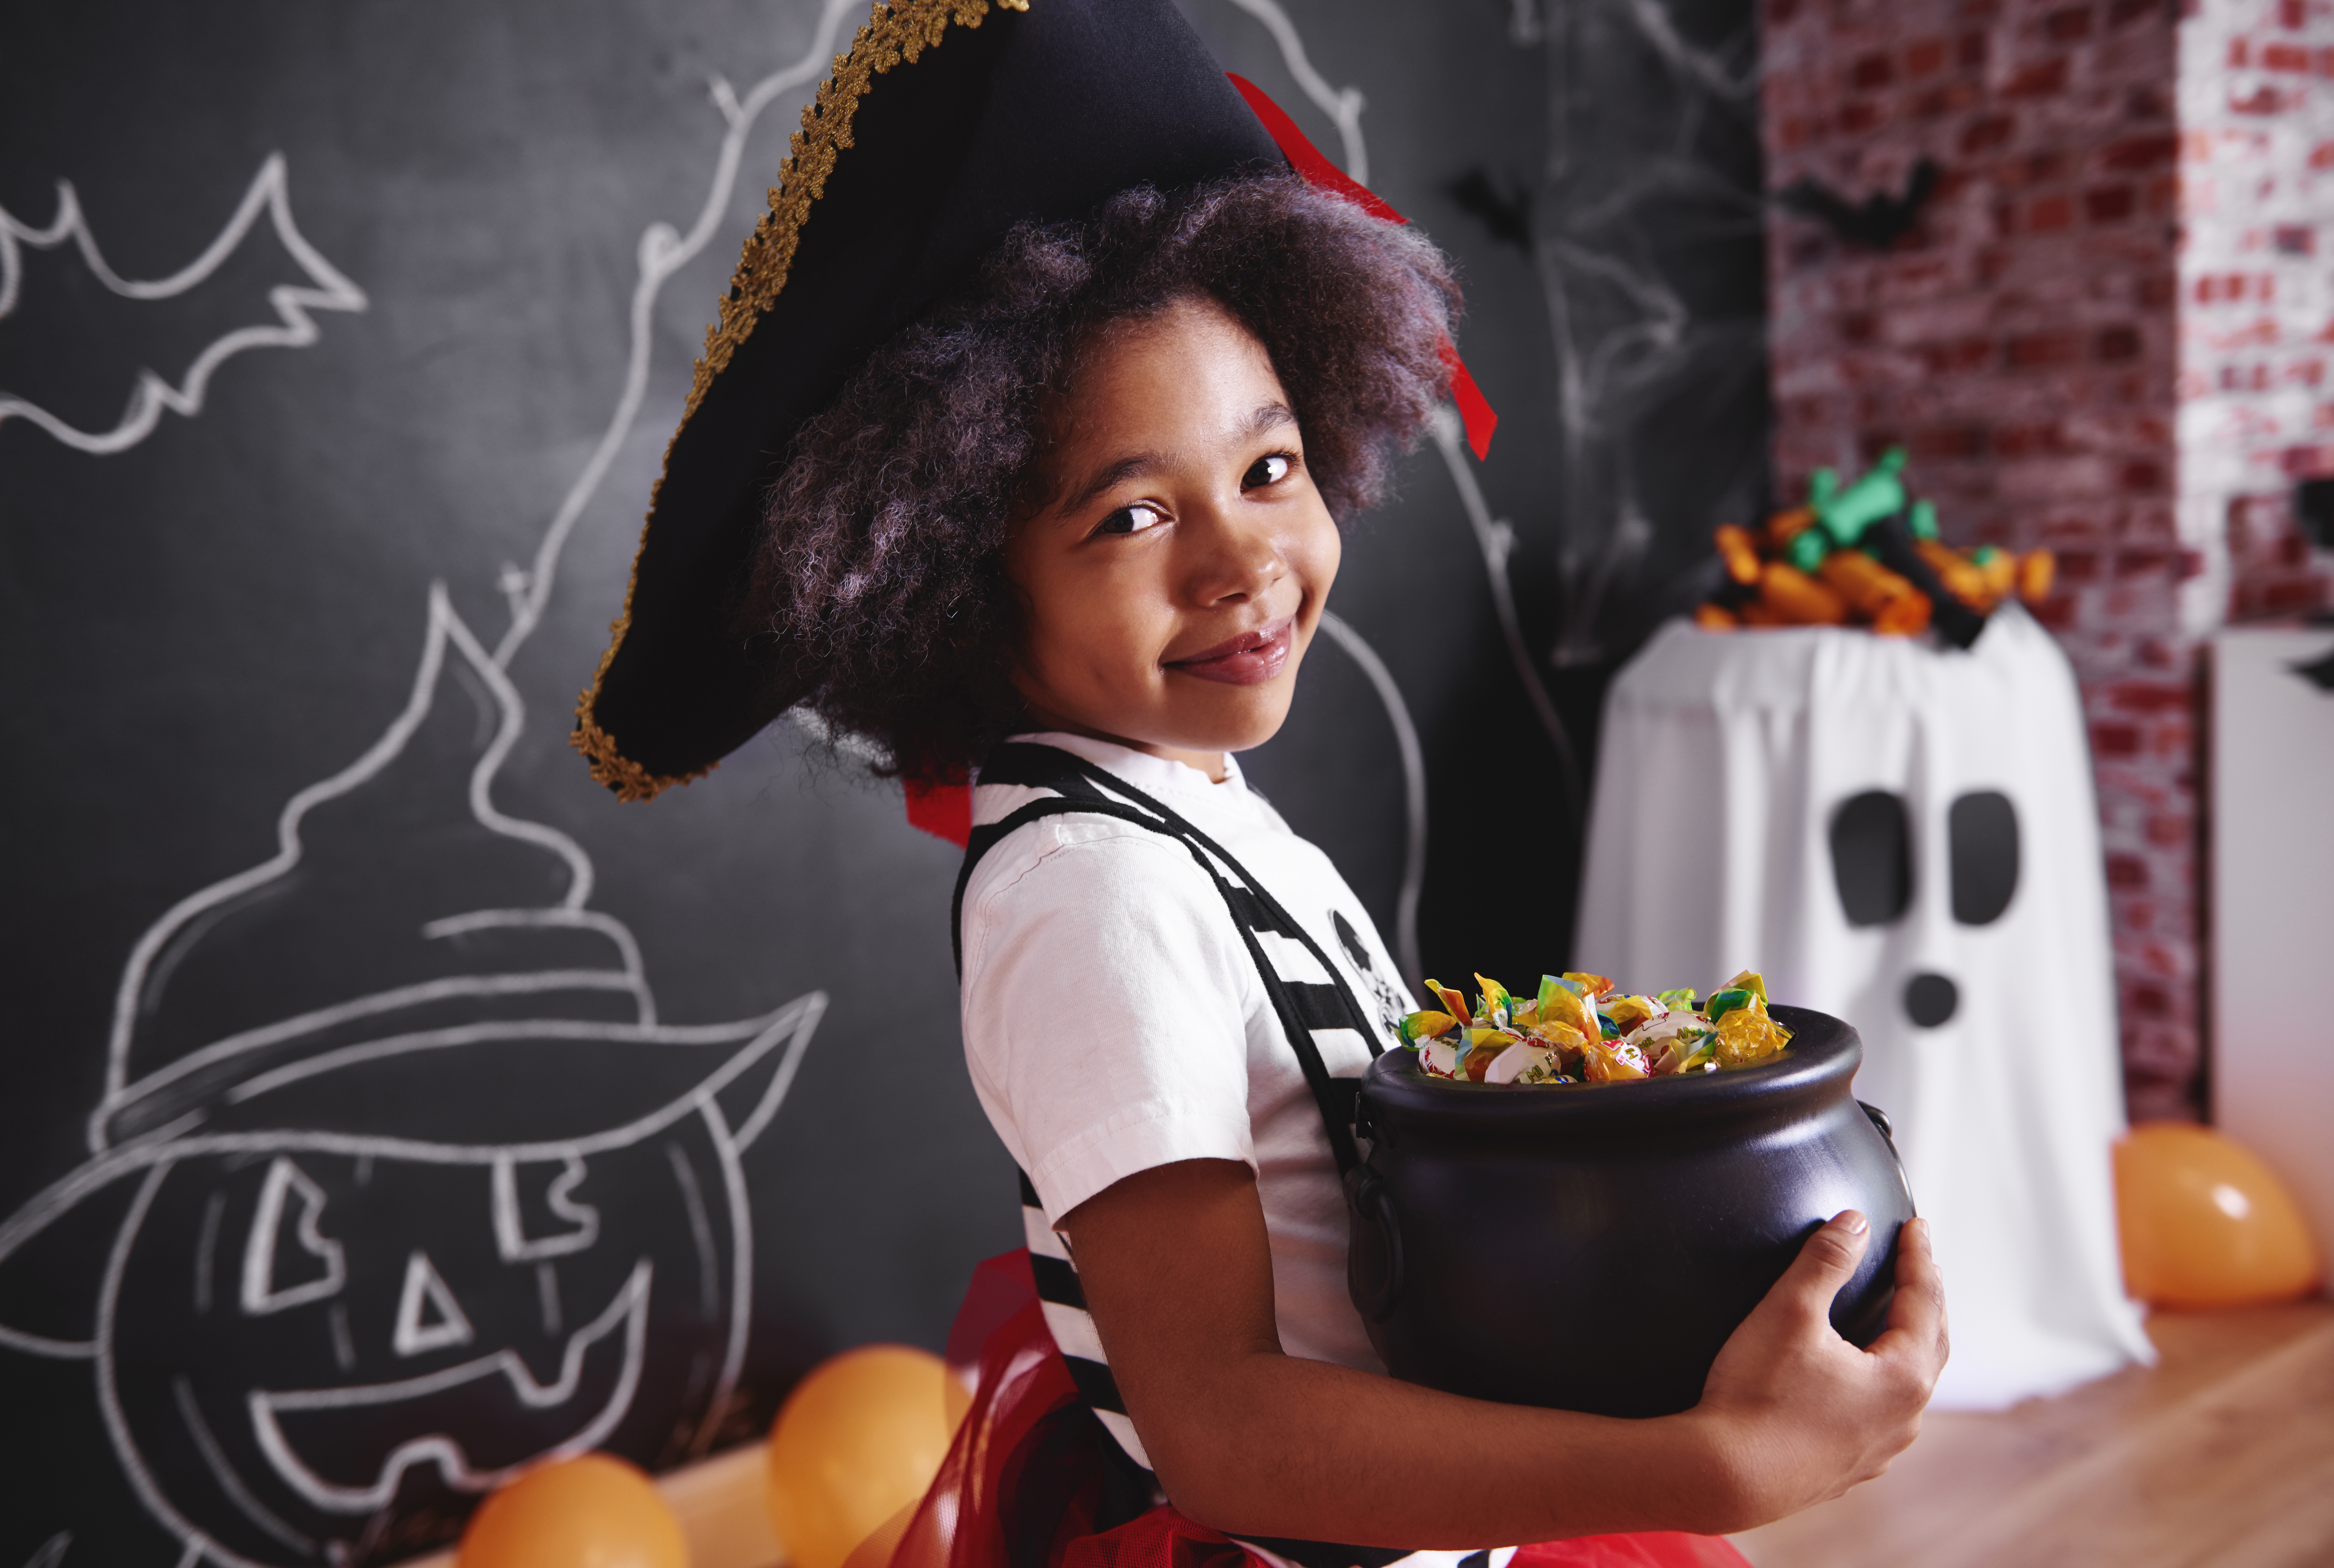 http://o.aolcdn.com/hss/storage/midas/abea5a3e5f1ee2d2413356b0894953ff/205786208/girl-holding-a-bowl-of-candy-picture-id849197864